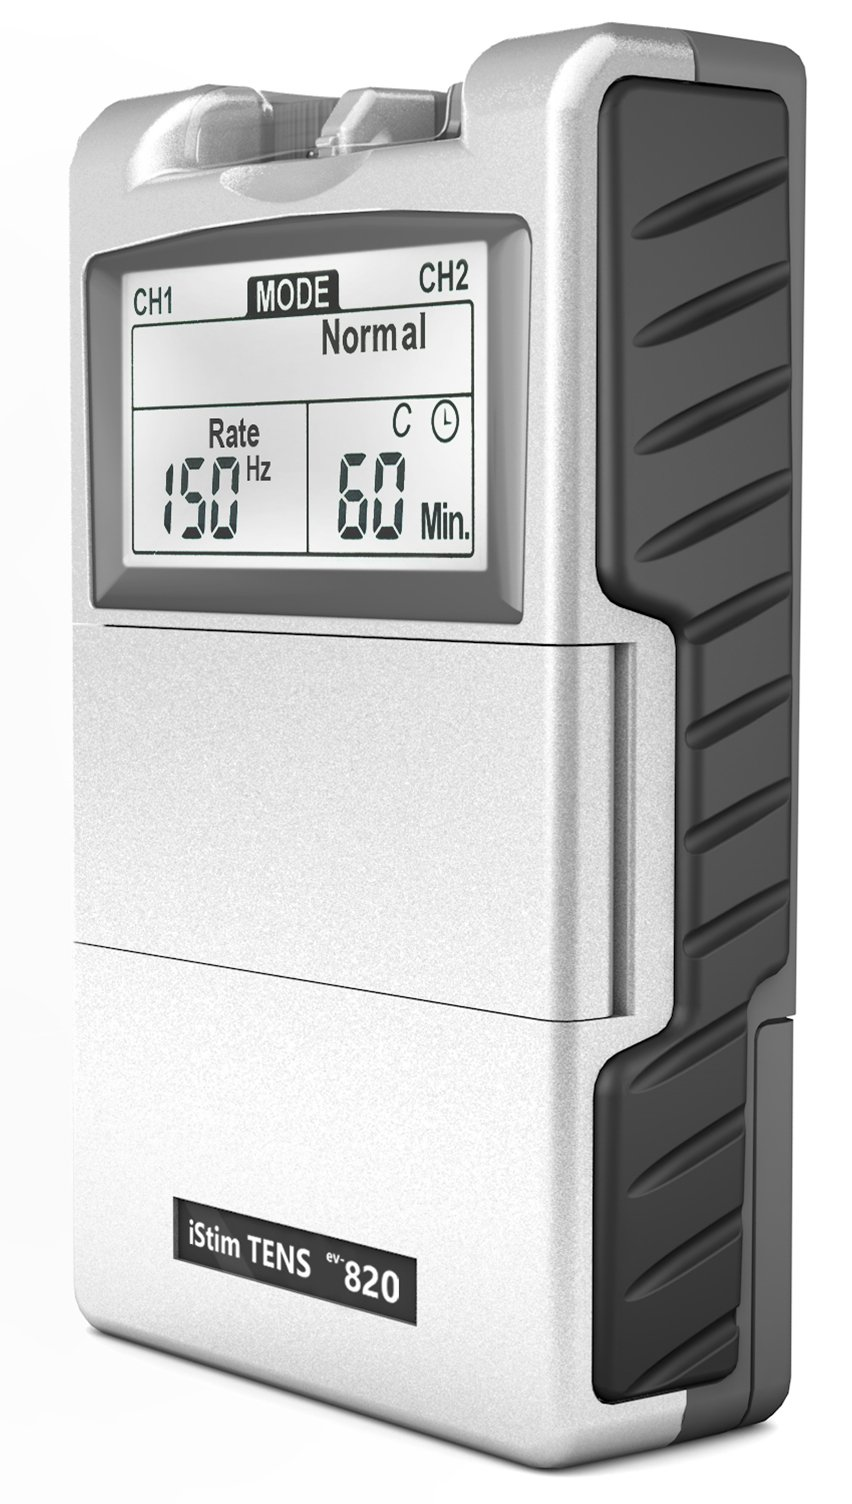 FDA Cleared TENS Unit iStim EV-820 TENS Machine for Pain Management, Back Pain and Rehabilitation by iSTIM (Image #8)